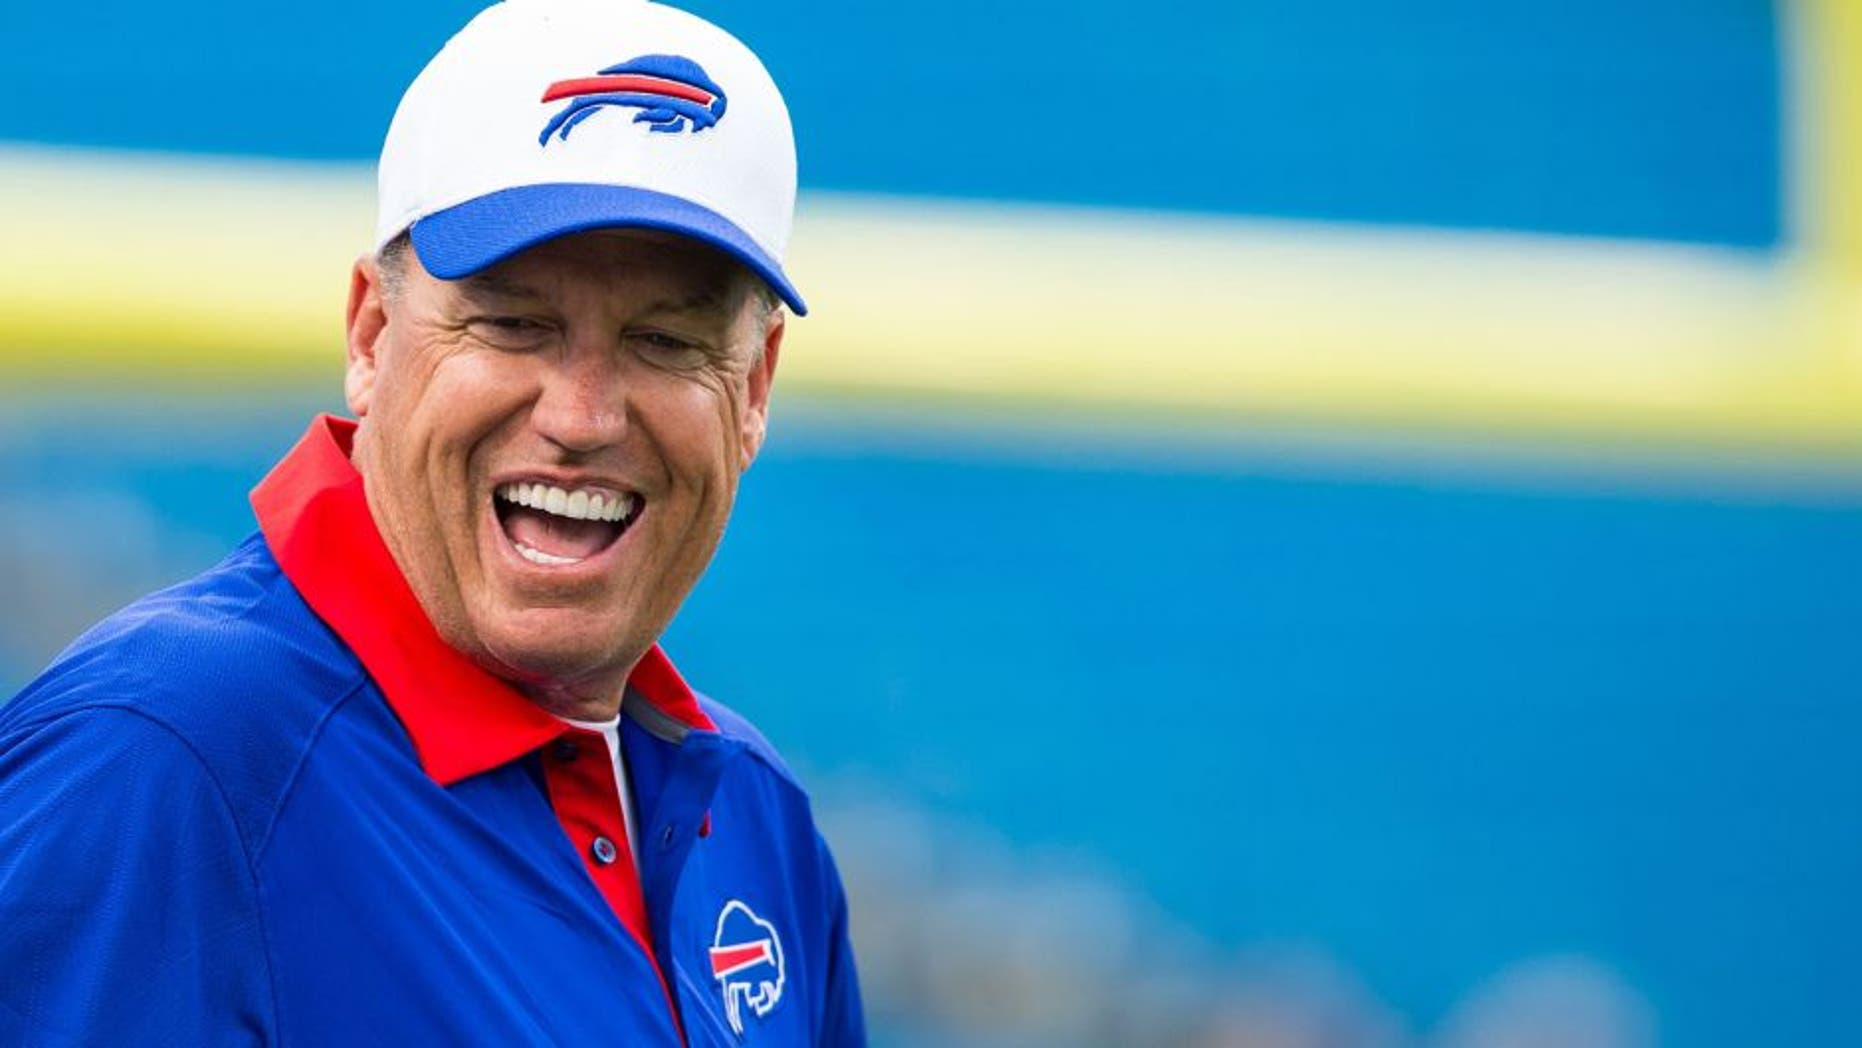 ORCHARD PARK, NY - AUGUST 14: Head coach Rex Ryan of the Buffalo Bills laughs with players before the game against the Carolina Panthers on August 14, 2015 at Ralph Wilson Stadium in Orchard Park, New York. (Photo by Brett Carlsen/Getty Images)